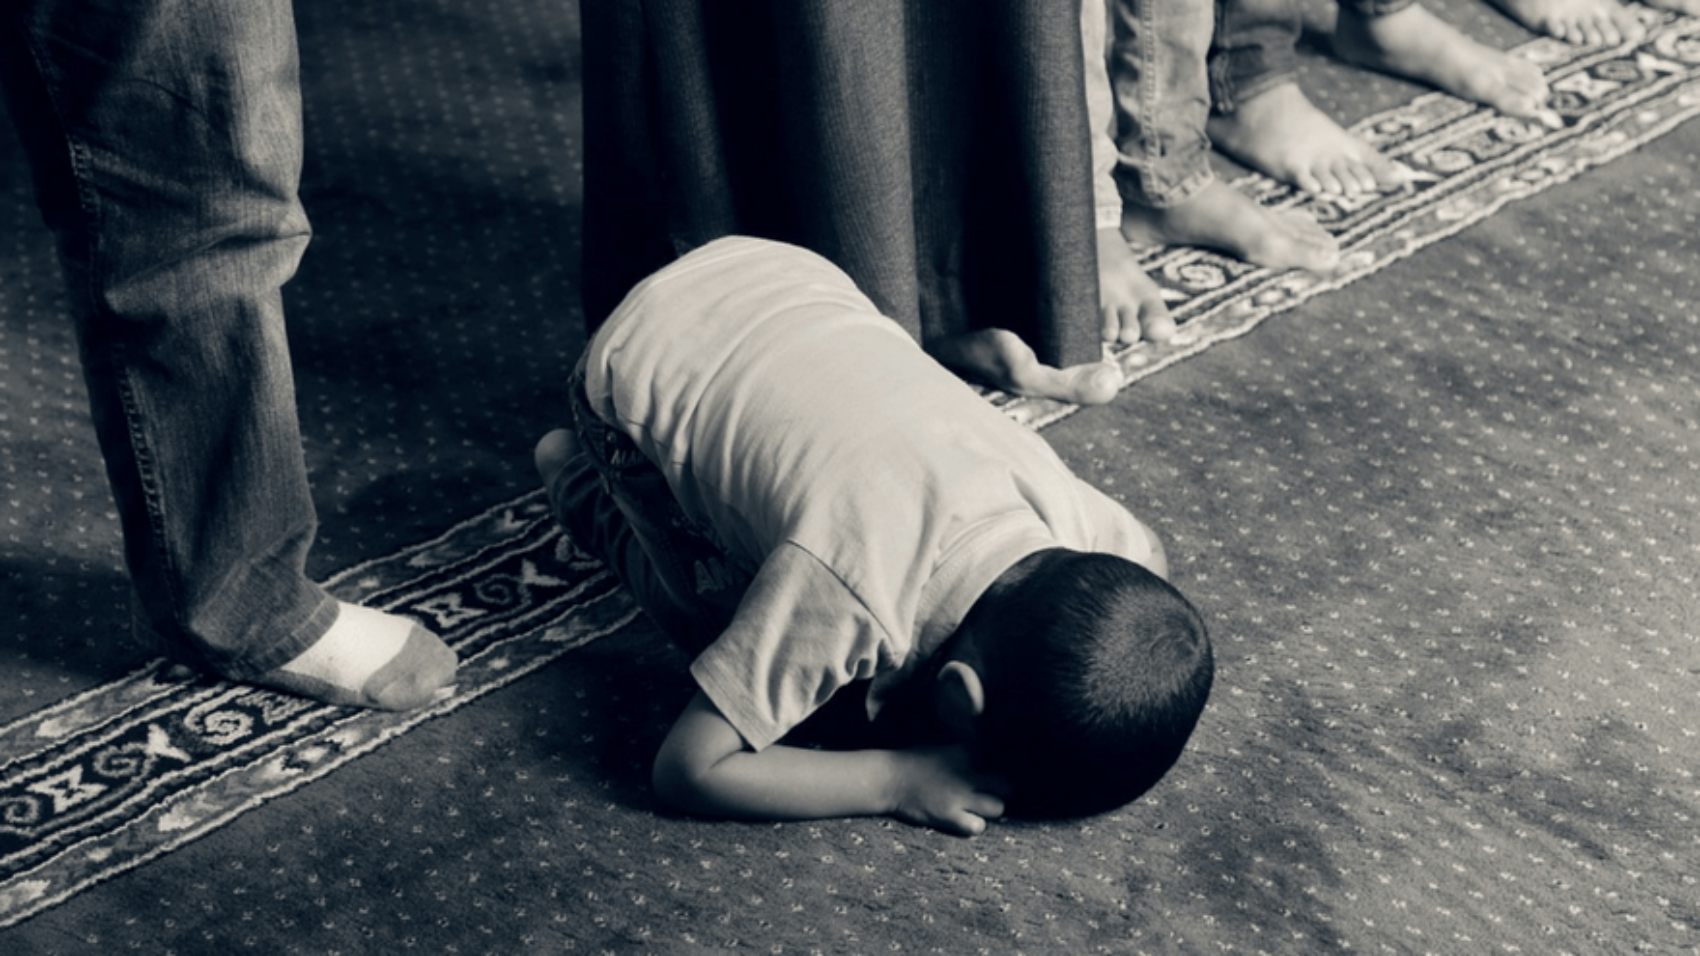 Ramadan - A Time for Reflection, A Time For Community